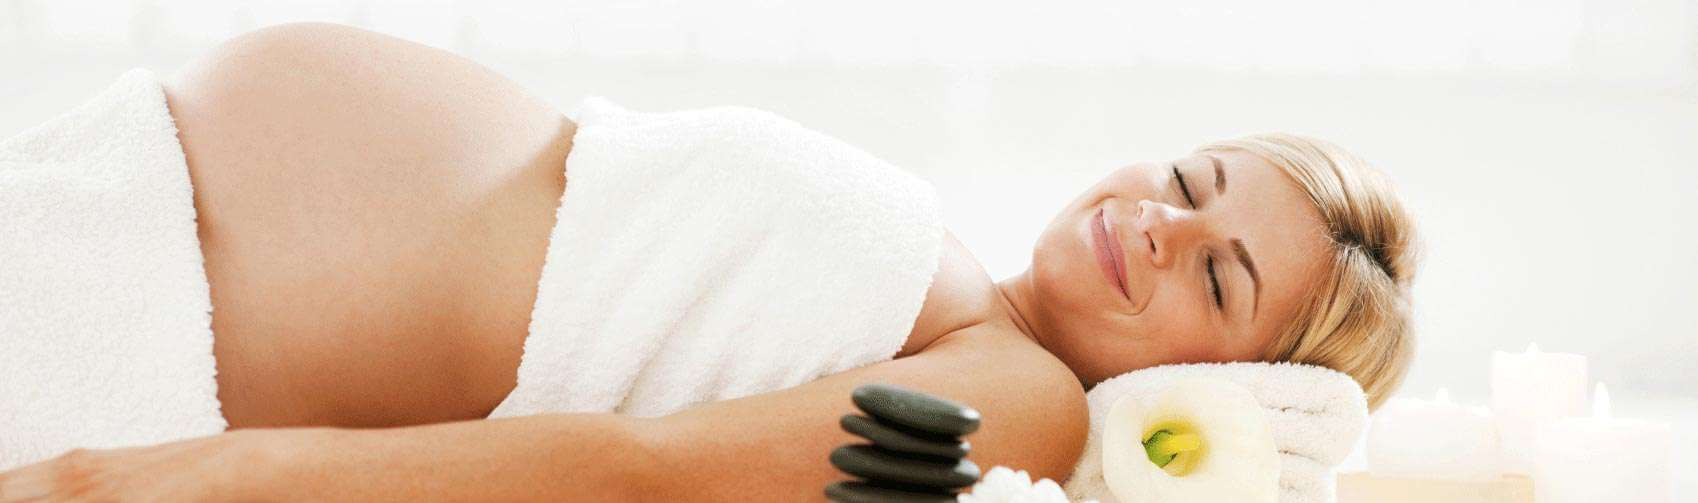 pregnancy massage Prenatal deals in chicago, il: 50 to 90% off deals in chicago $45 for 60-minute deep tissue, prenatal , or sports massage at the bodylux rx ($105 value.